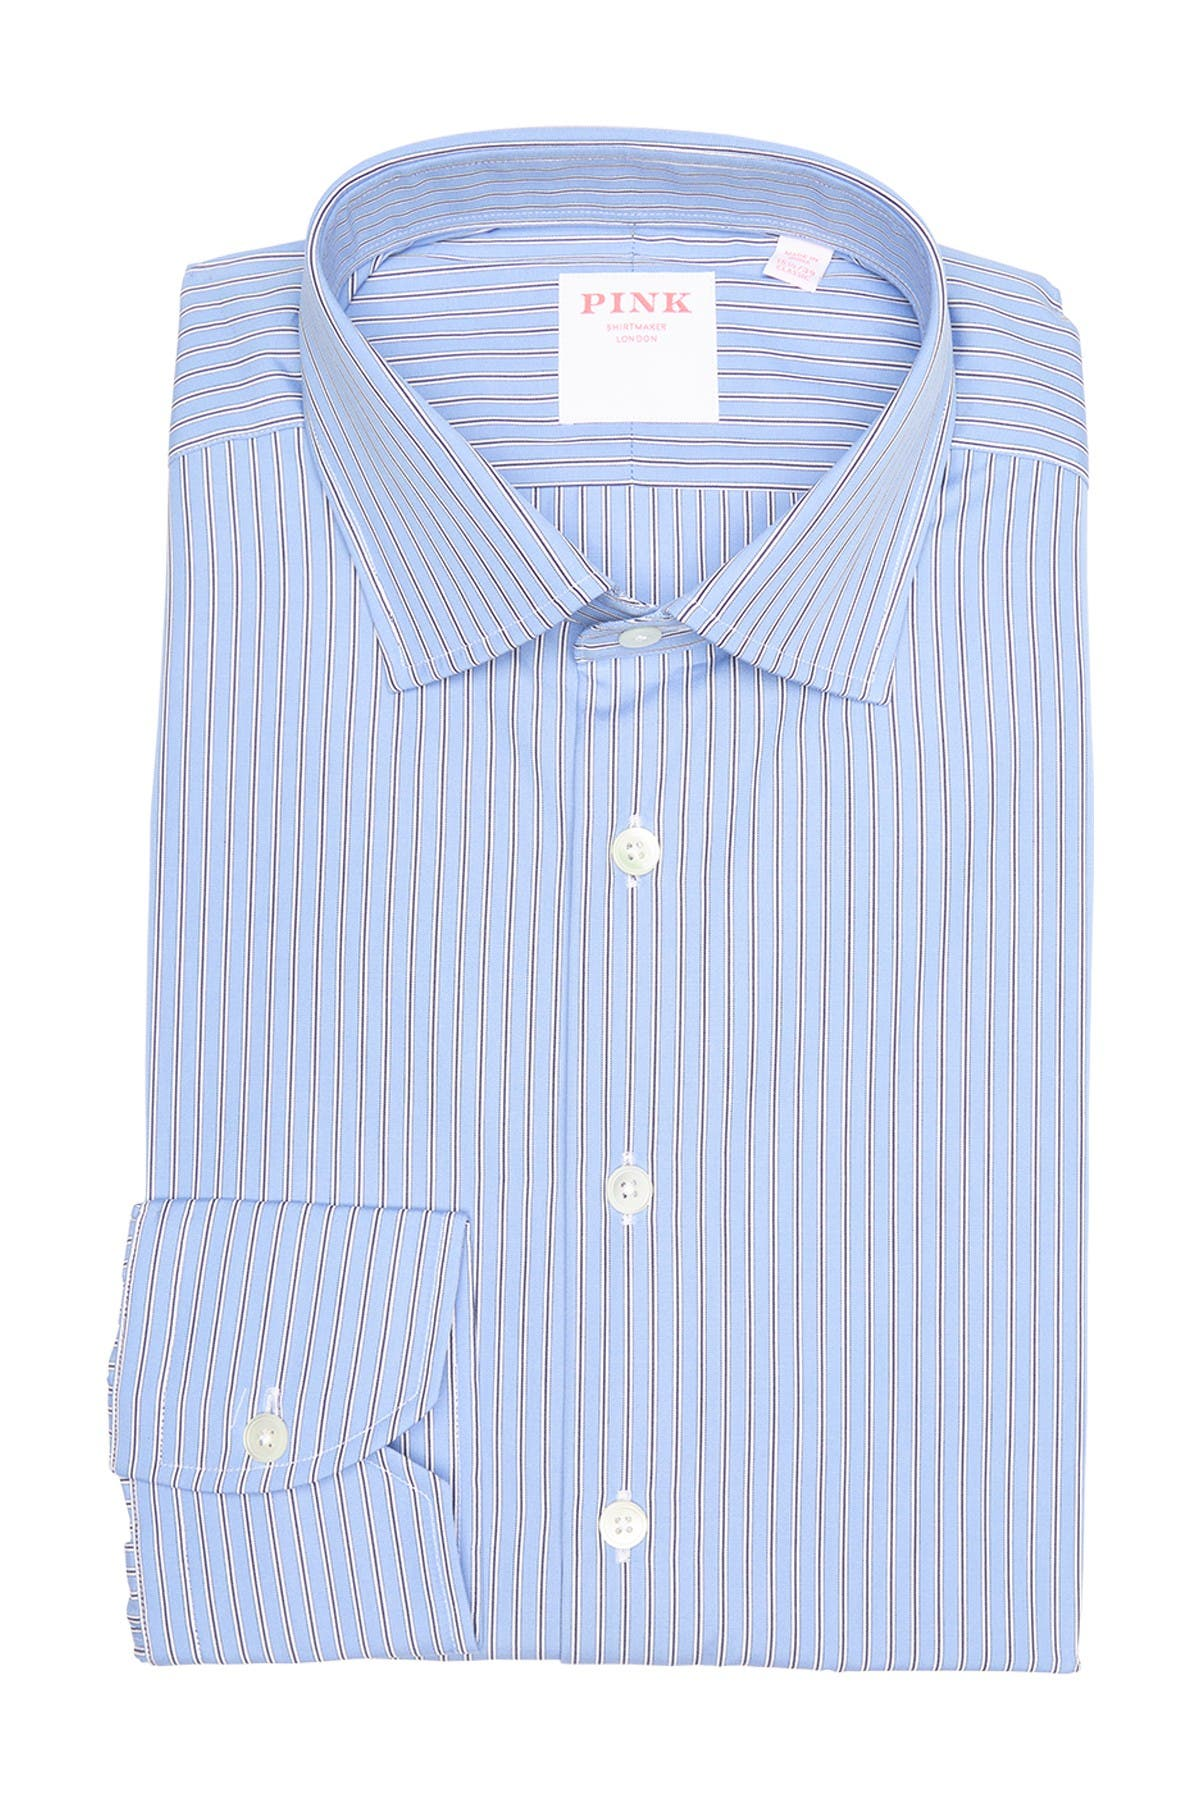 Image of THOMAS PINK Double Stripe Classic Fit Dress Shirt